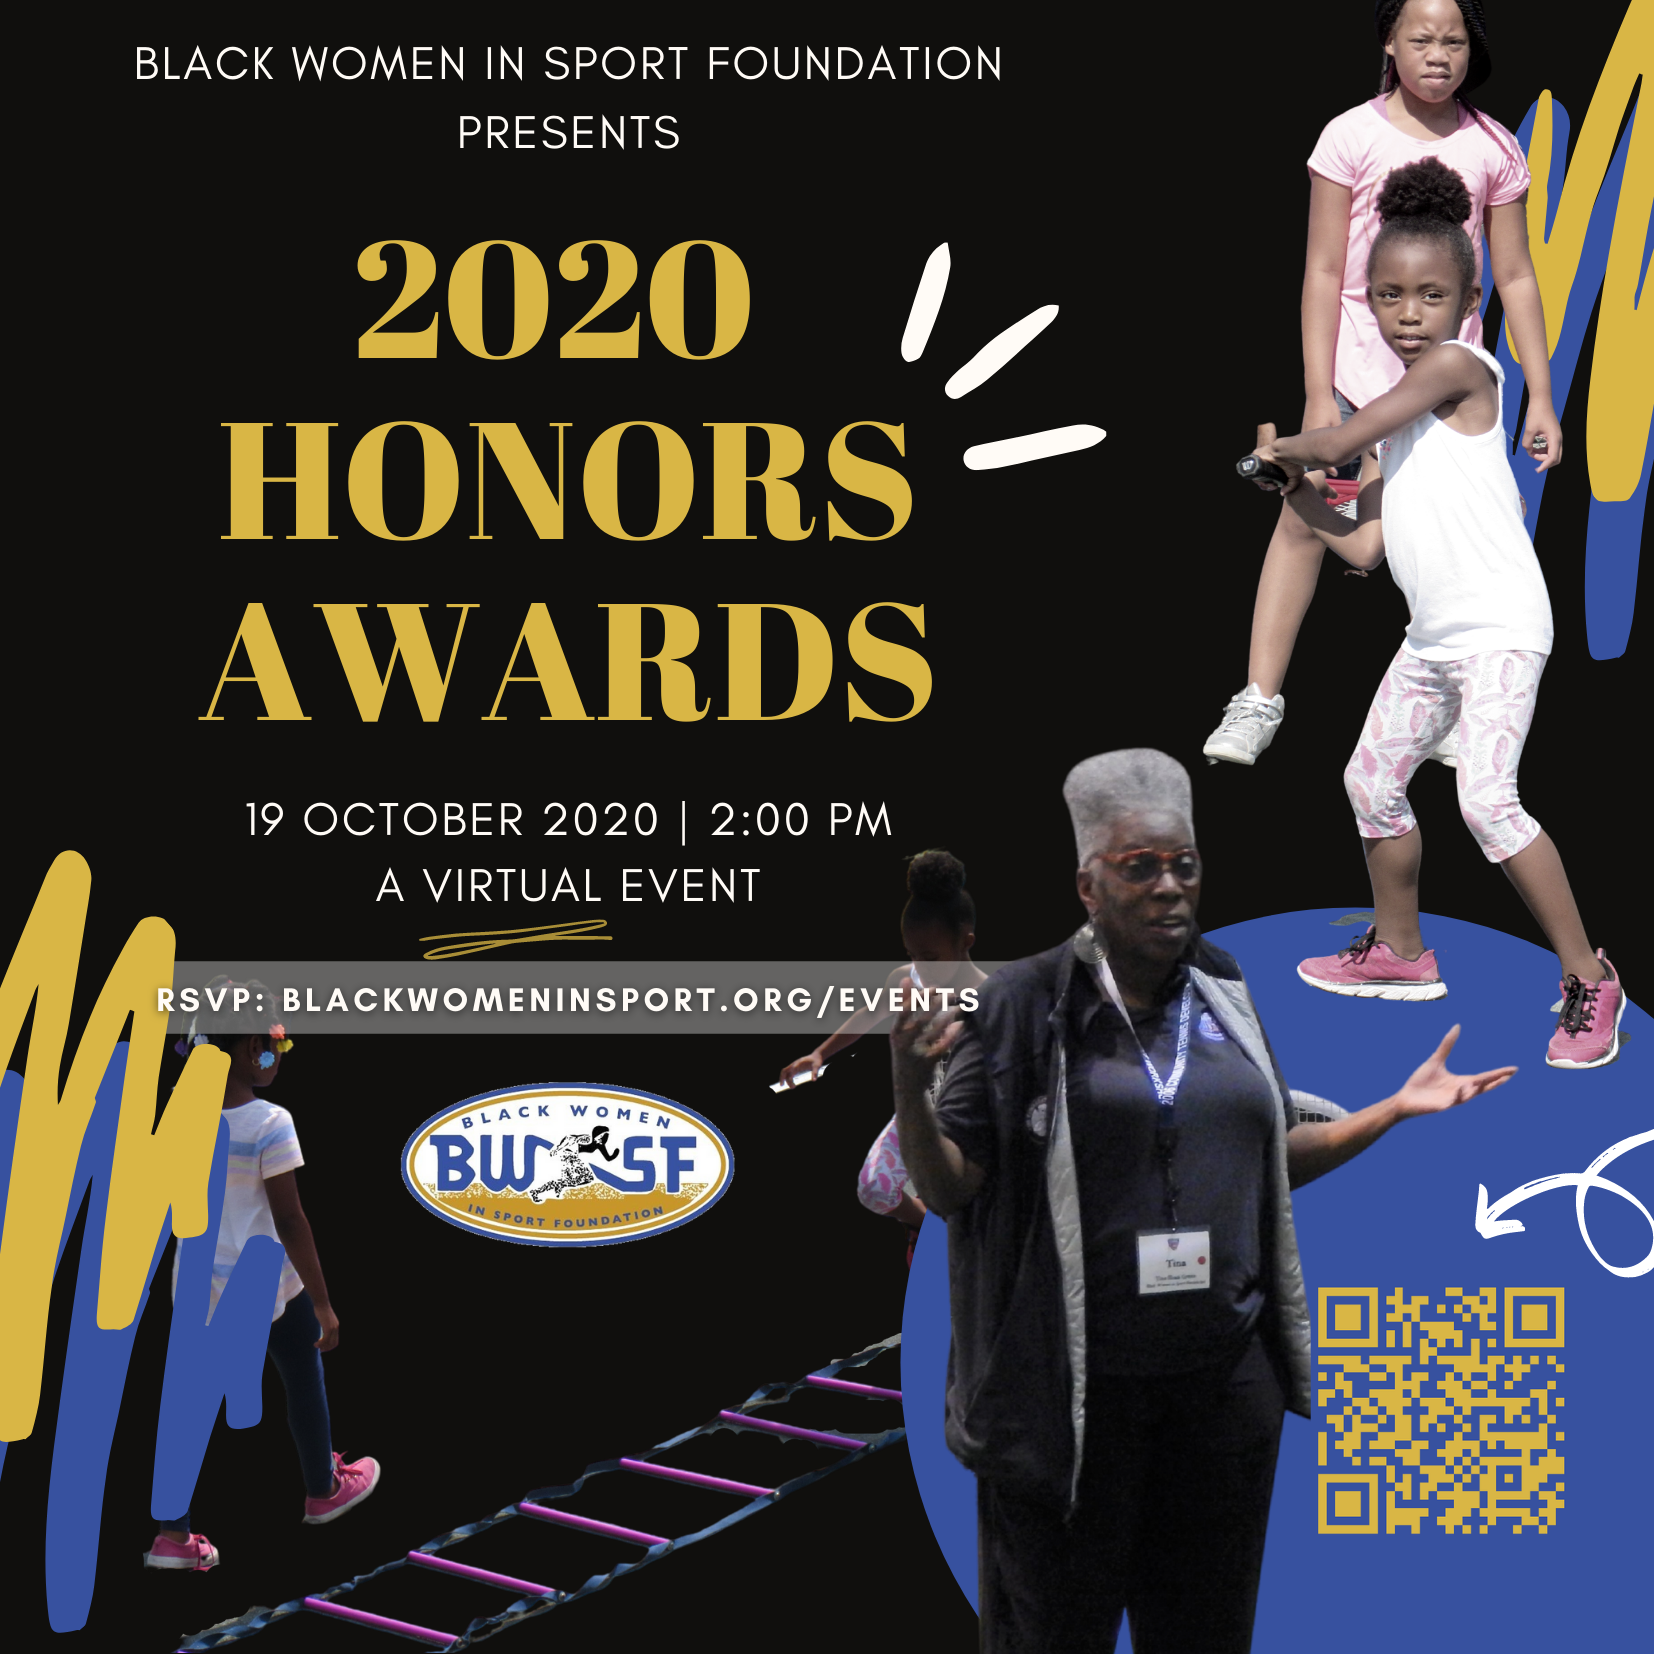 Celebrating Tina Sloan Green and the Black Women in Sport Foundation Honors